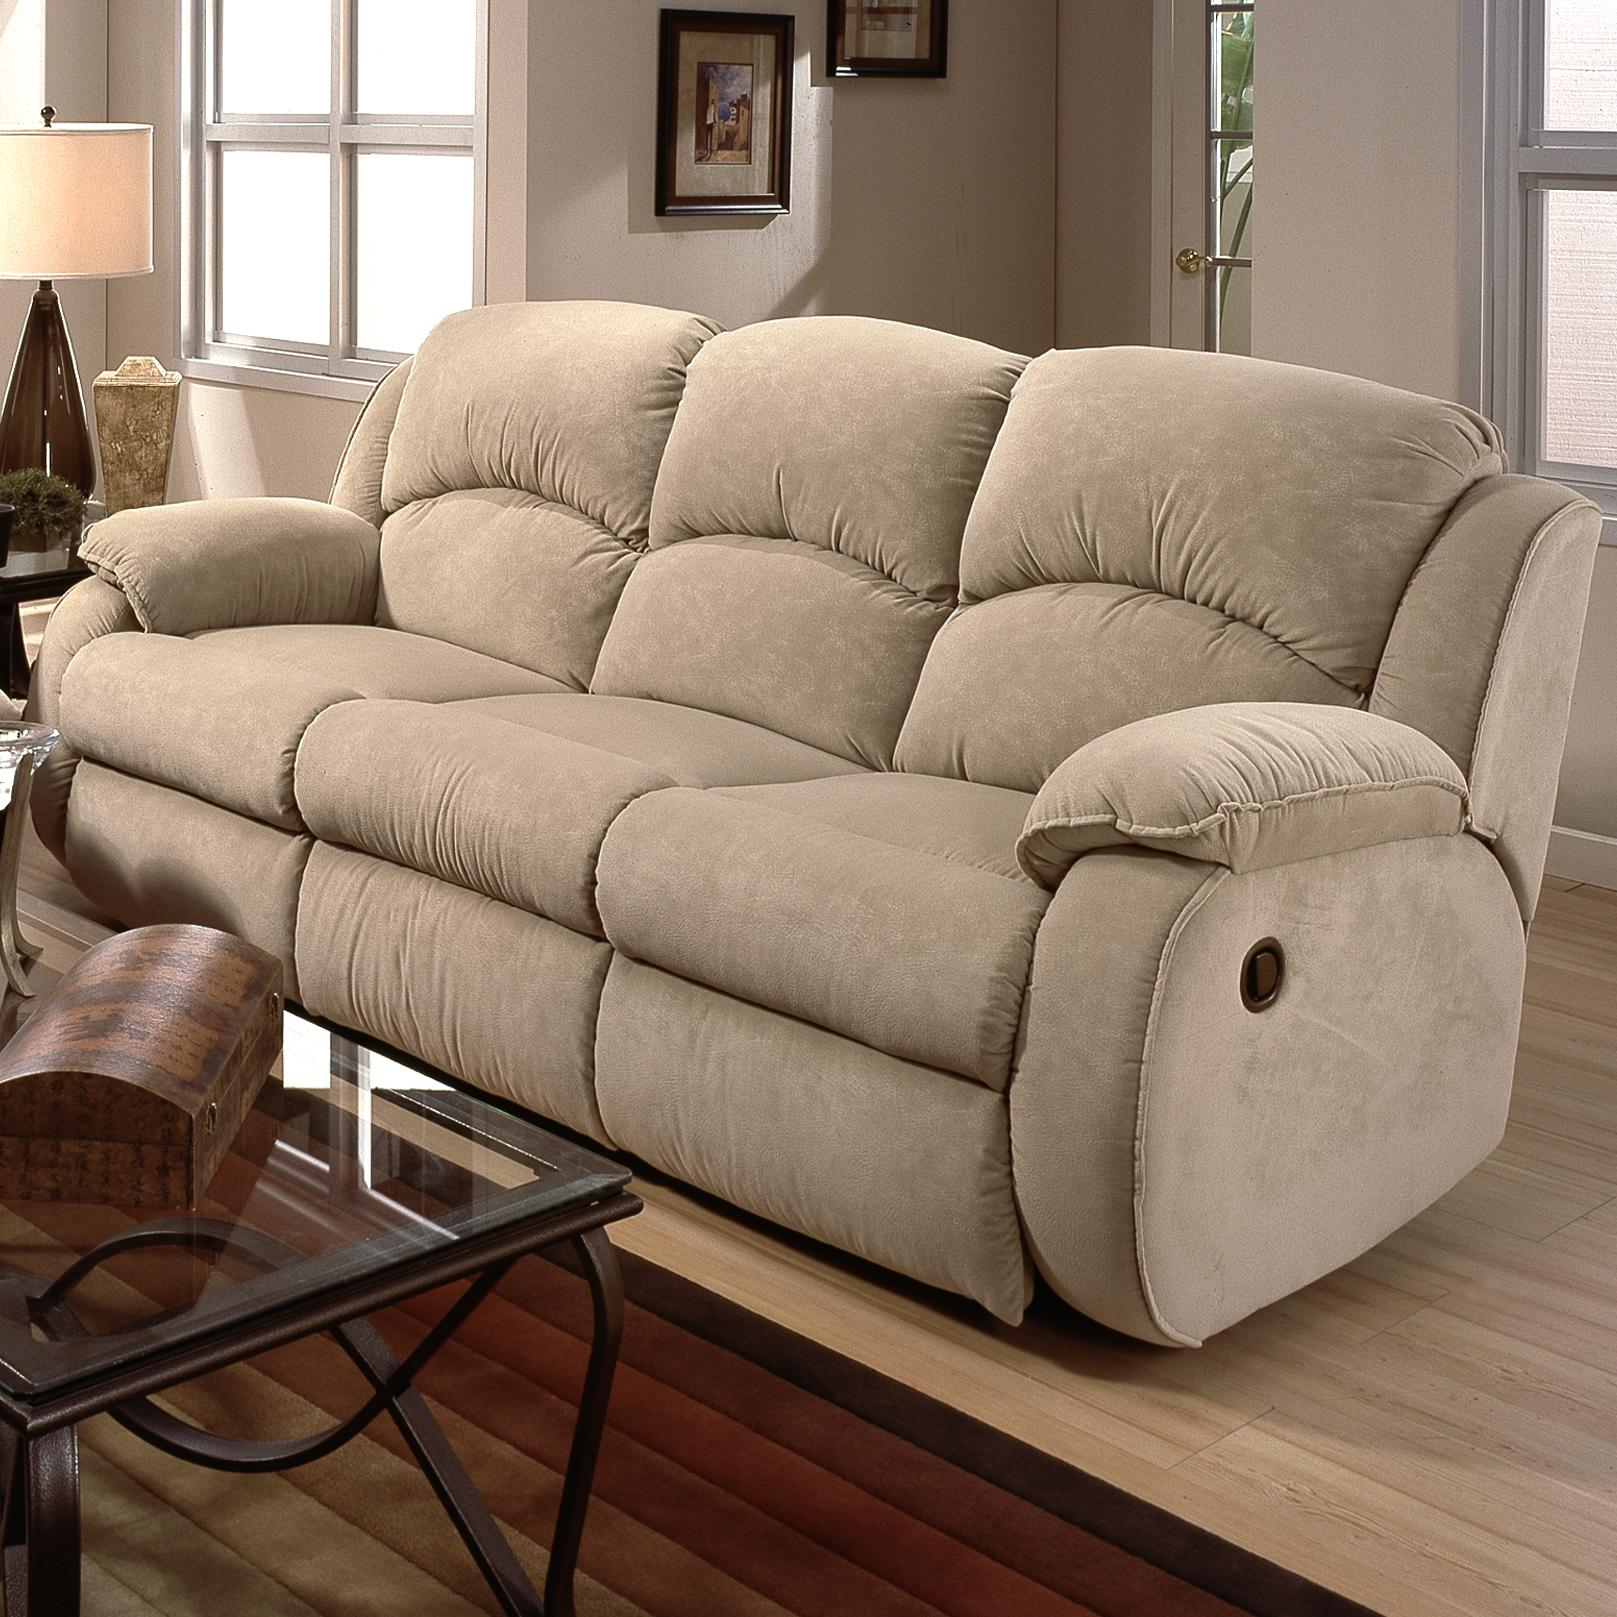 Belfort Motion Cagney Double Reclining Sofa - Item Number: 705-31